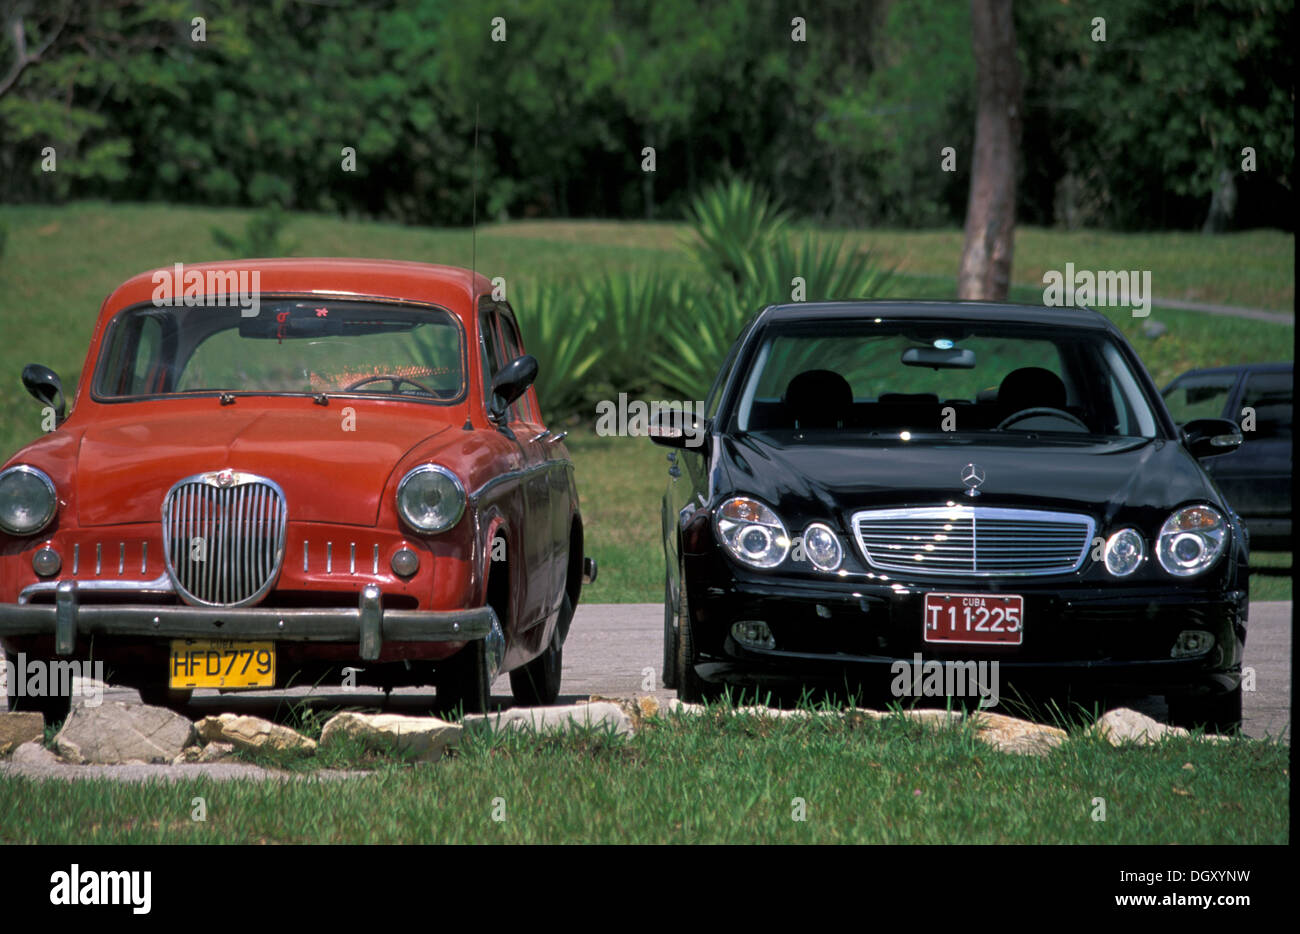 Capitalism and communism, Mercedes and vintage car in Cuba - Stock Image